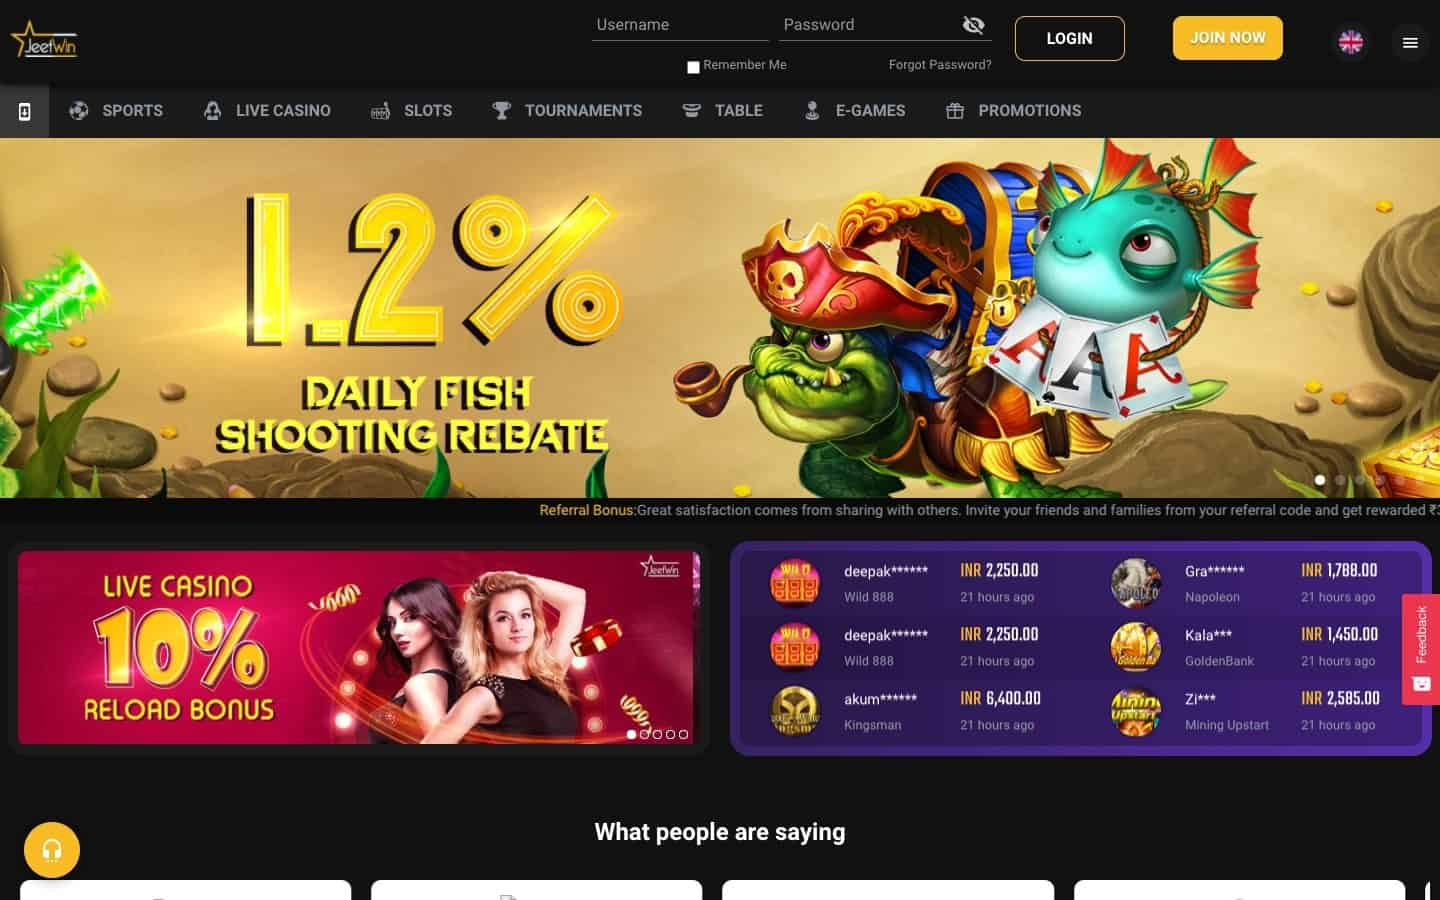 Jeetwin Casino review - Website